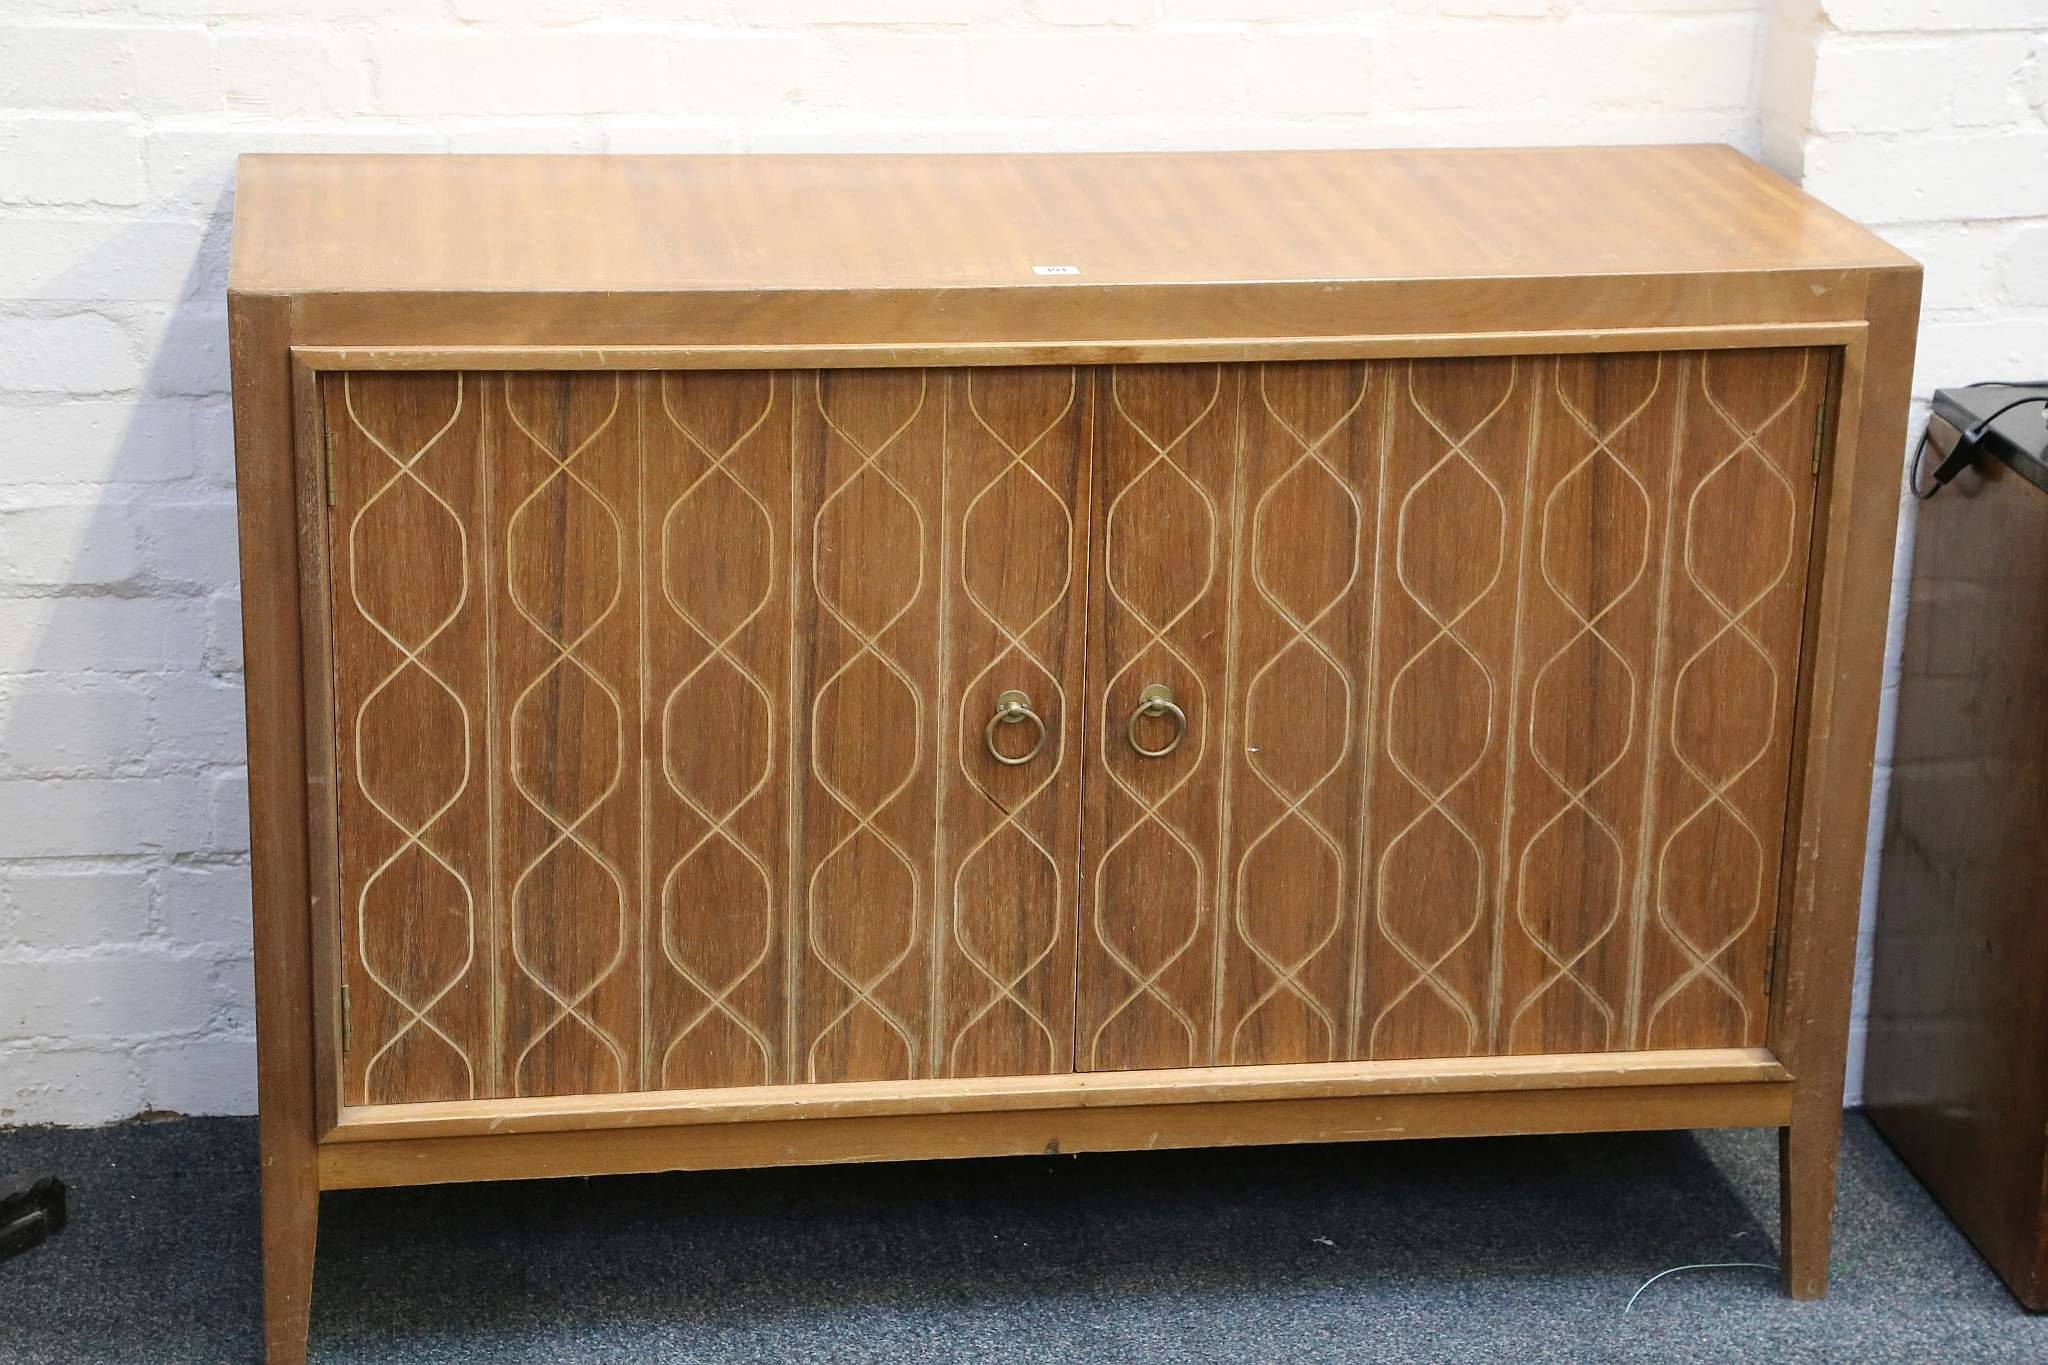 A 1950S Gordon Russell Teak Double Helix Sideboard, With Incised intended for Gordon Russell Helix Sideboards (Image 1 of 15)